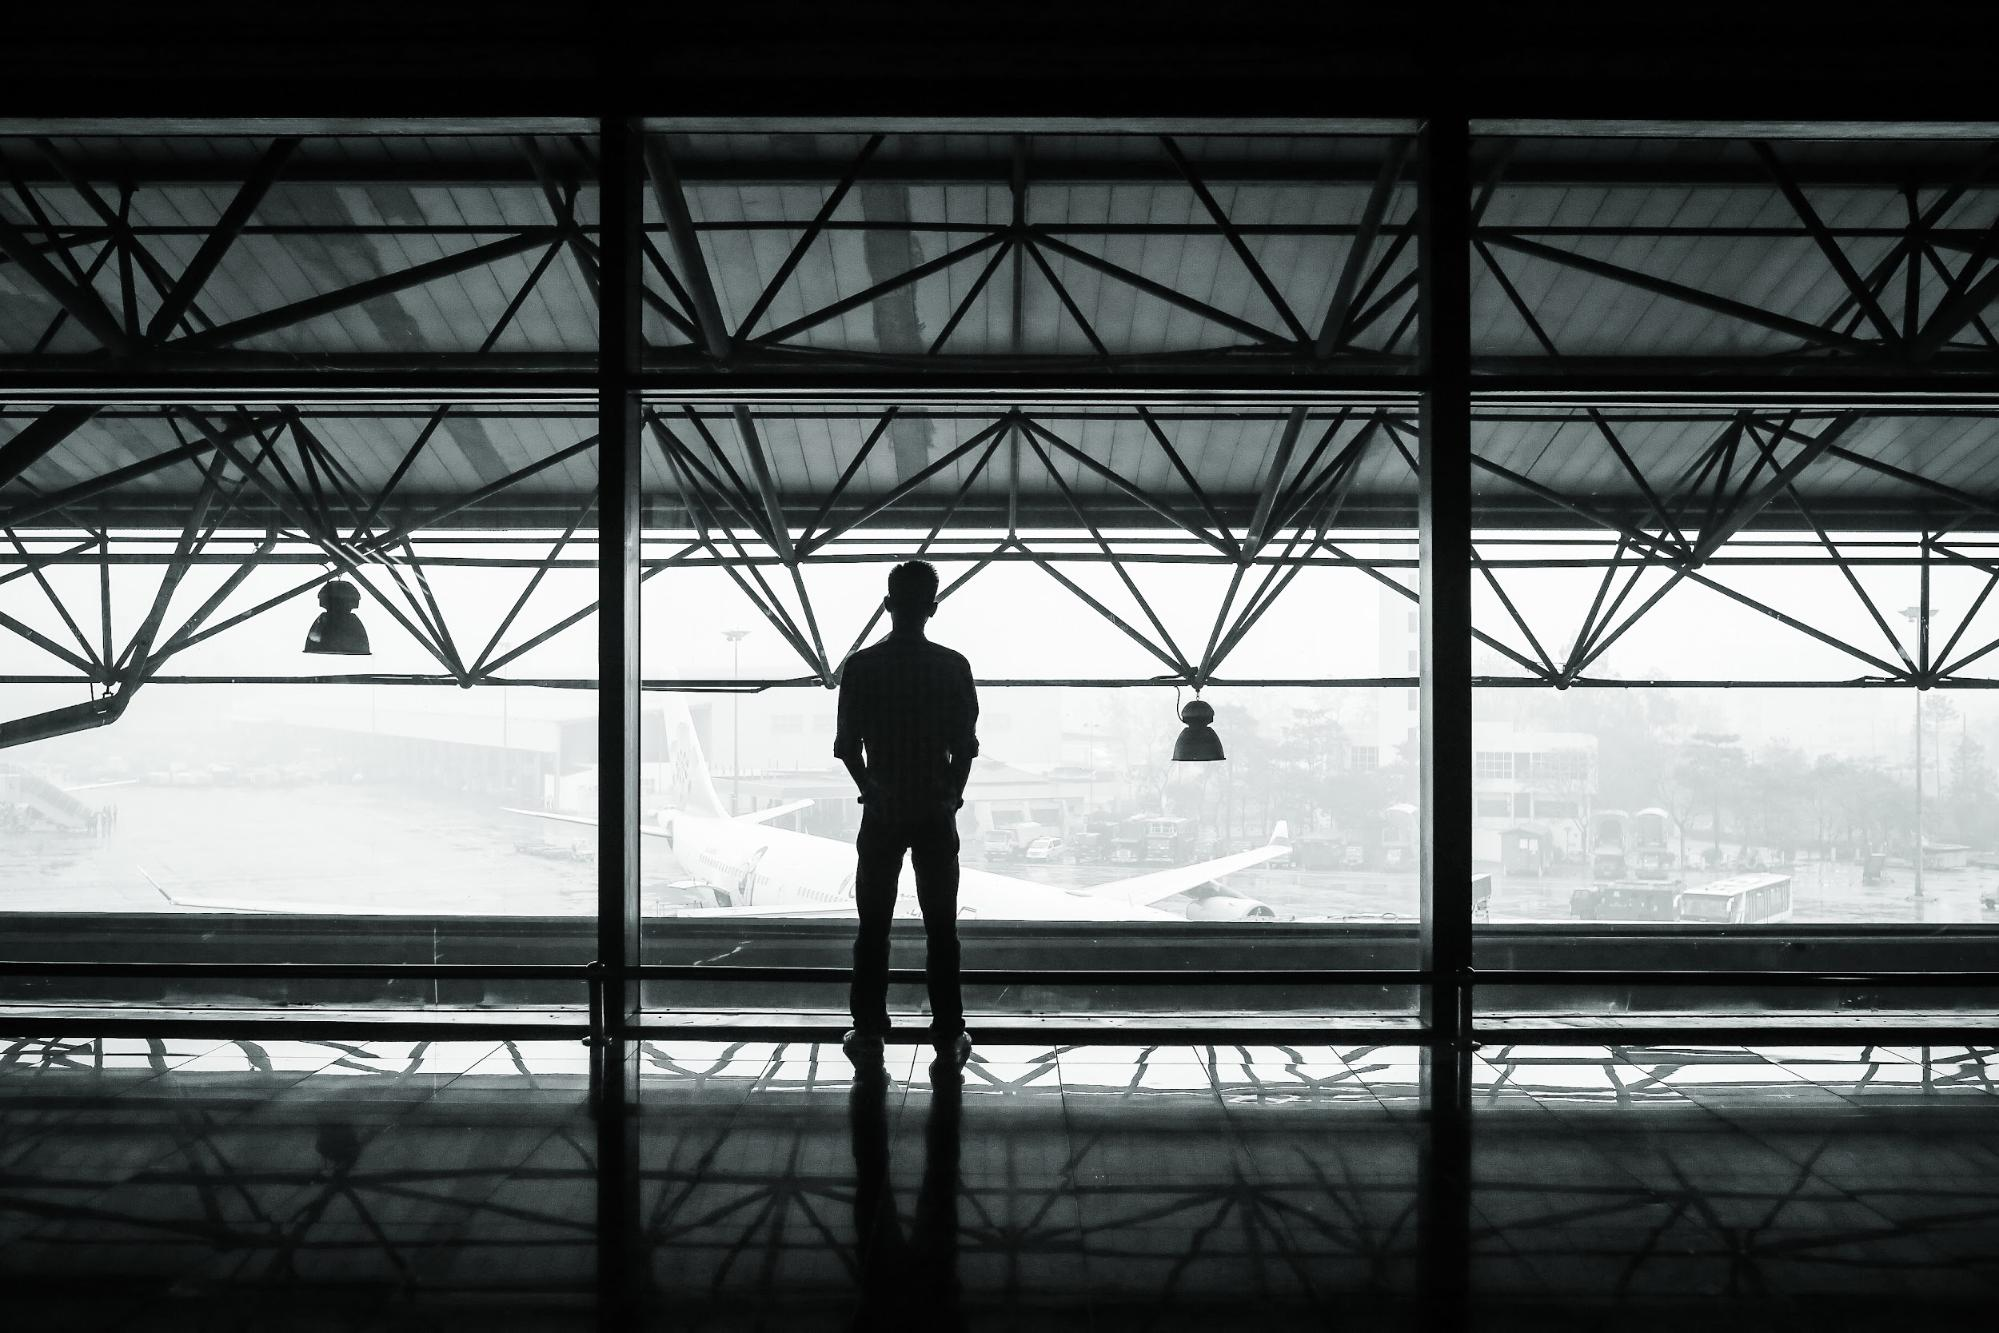 Man in terminal looking at airplane